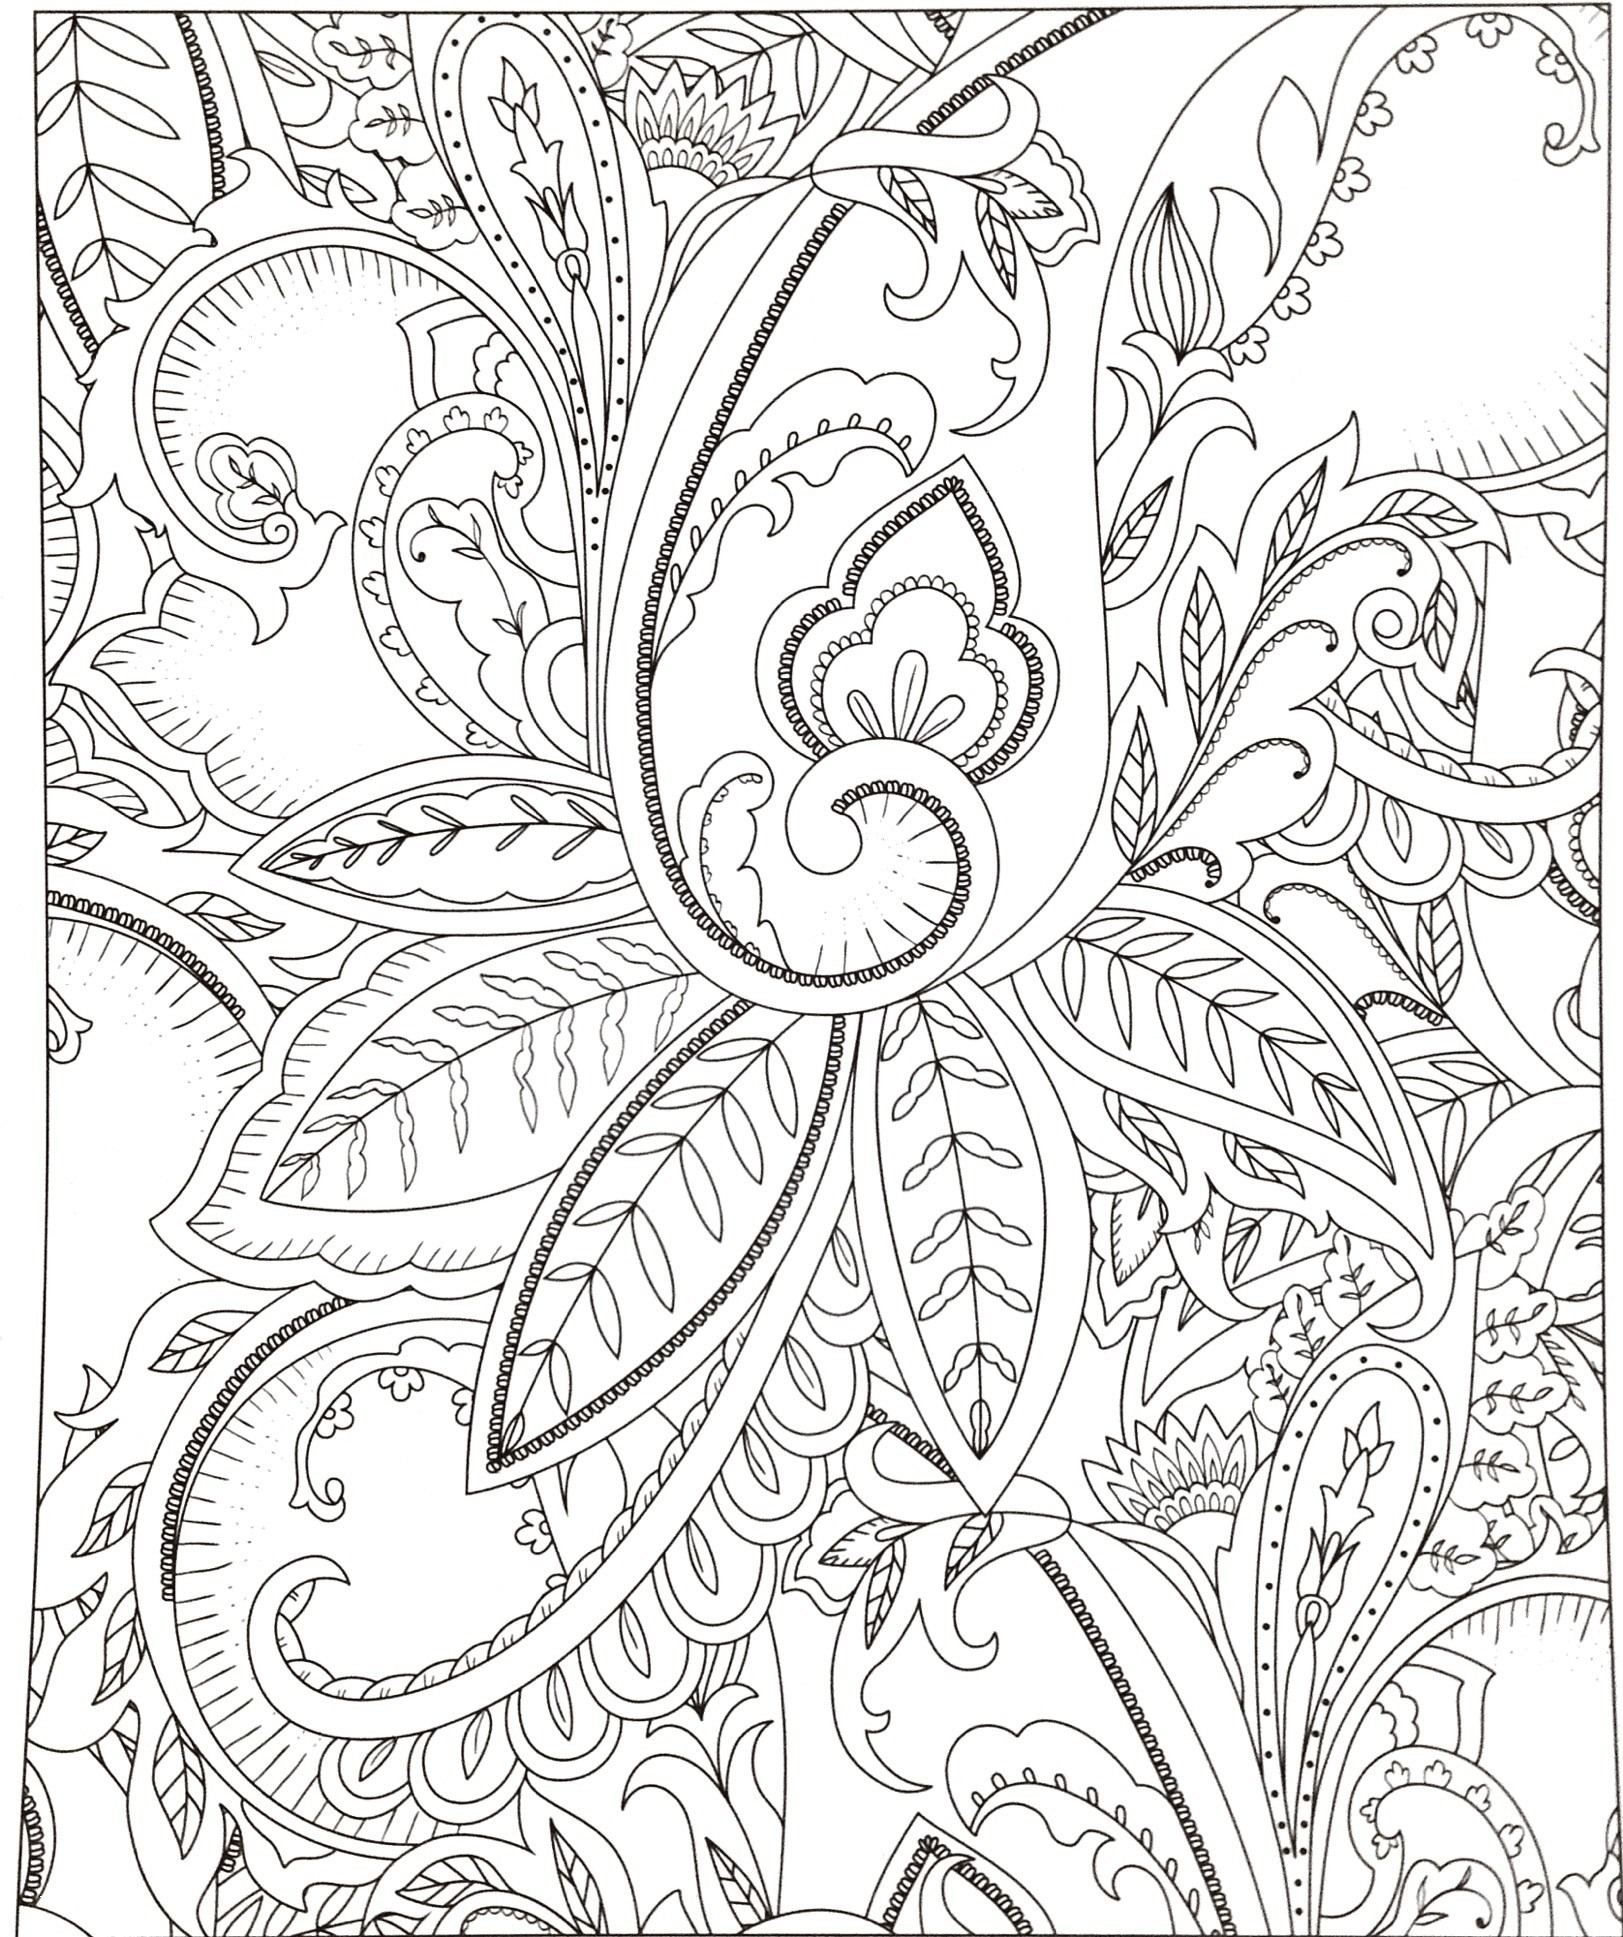 22 Coloring Pages Easter Printable Gallery - Coloring Sheets